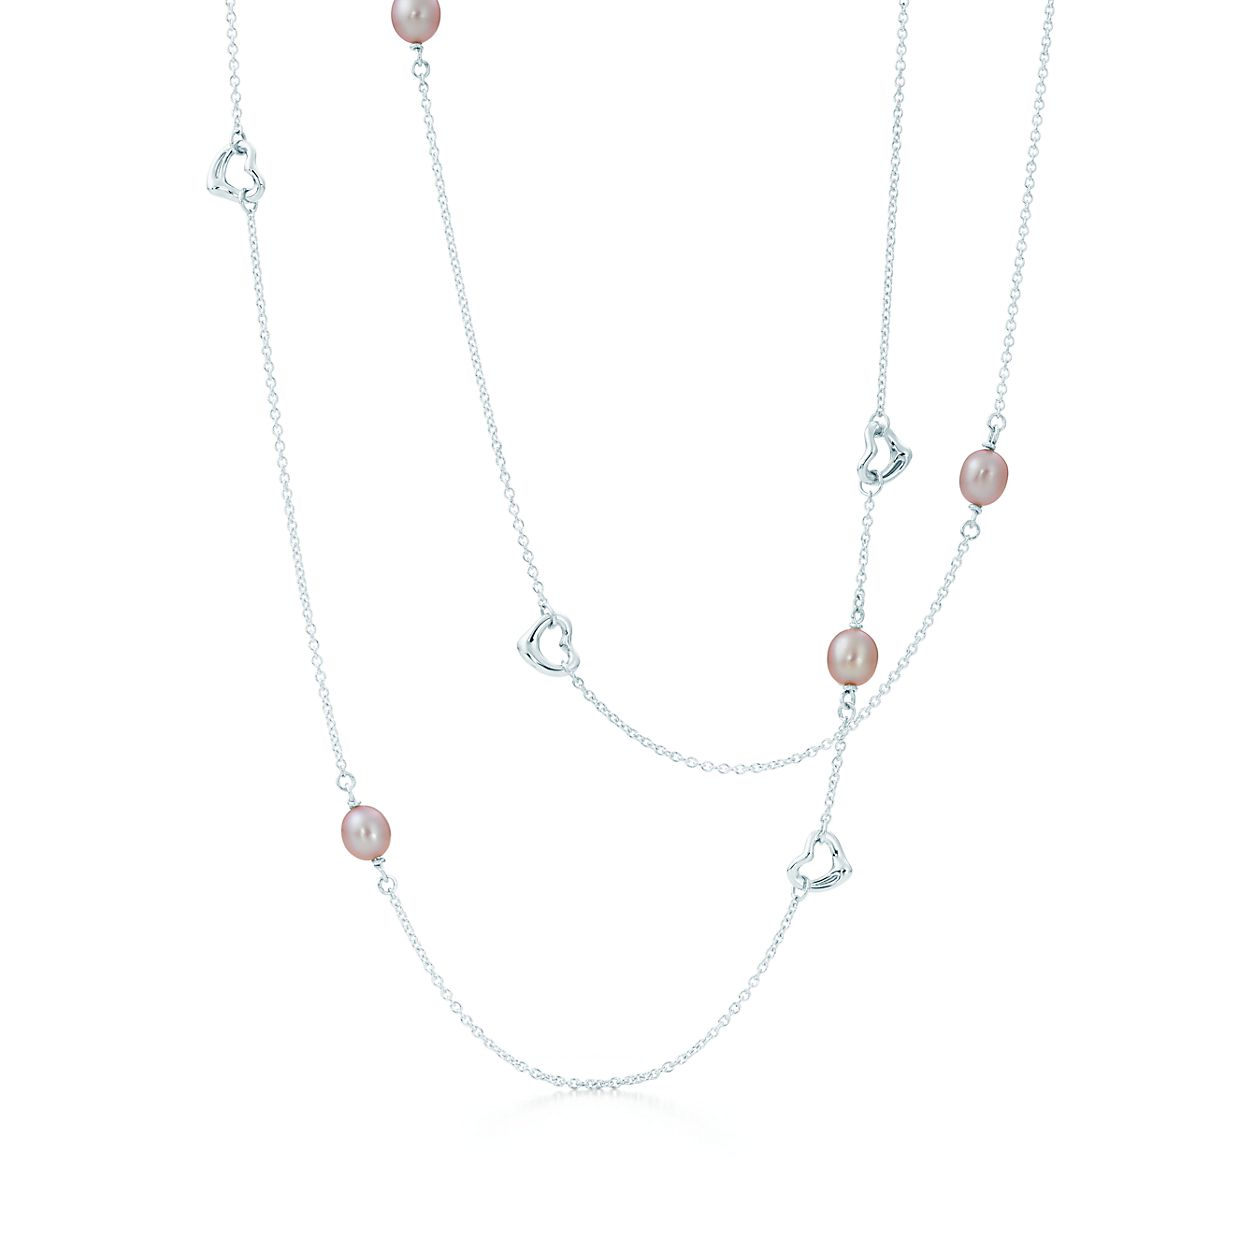 Elsa Peretti Pearls by the Yard sprinkle necklace in sterling silver - Size Tiffany & Co. ATmzh9JJ